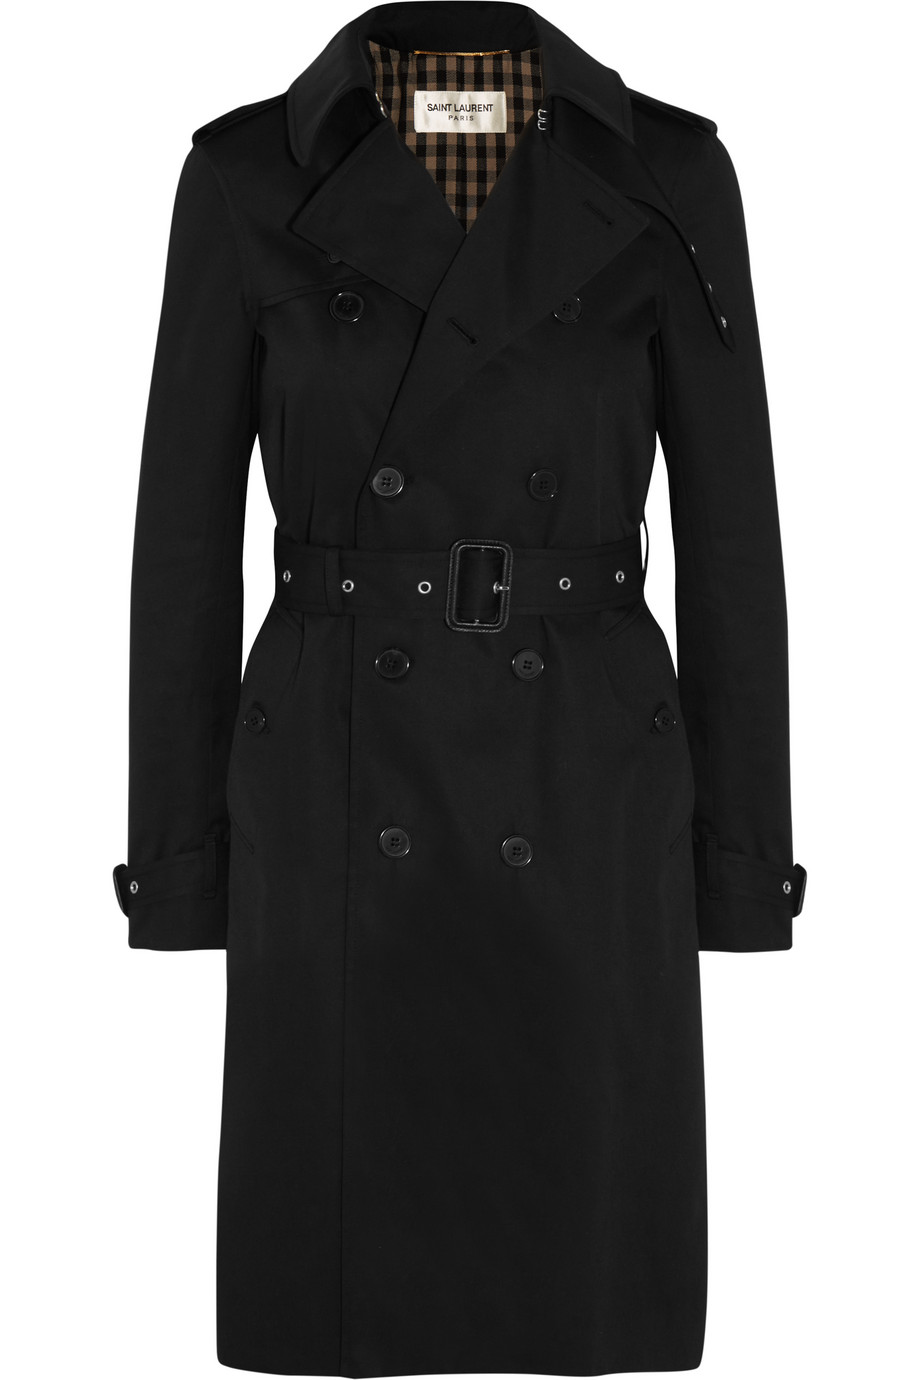 Saint Laurent Gabardine Trench Coat, Black, Women's, Size: 36